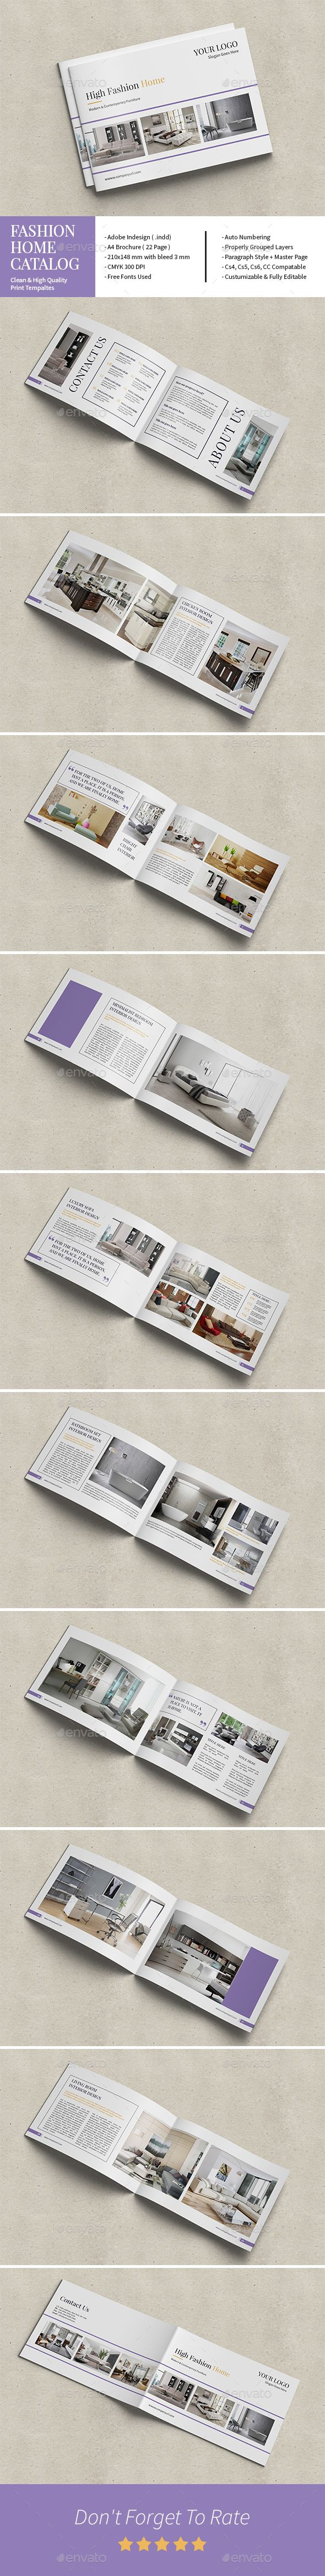 High Fashion Home Catalog Template InDesign INDD. Download here: http://graphicriver.net/item/high-fashion-home-catalog/16850767?ref=ksioks